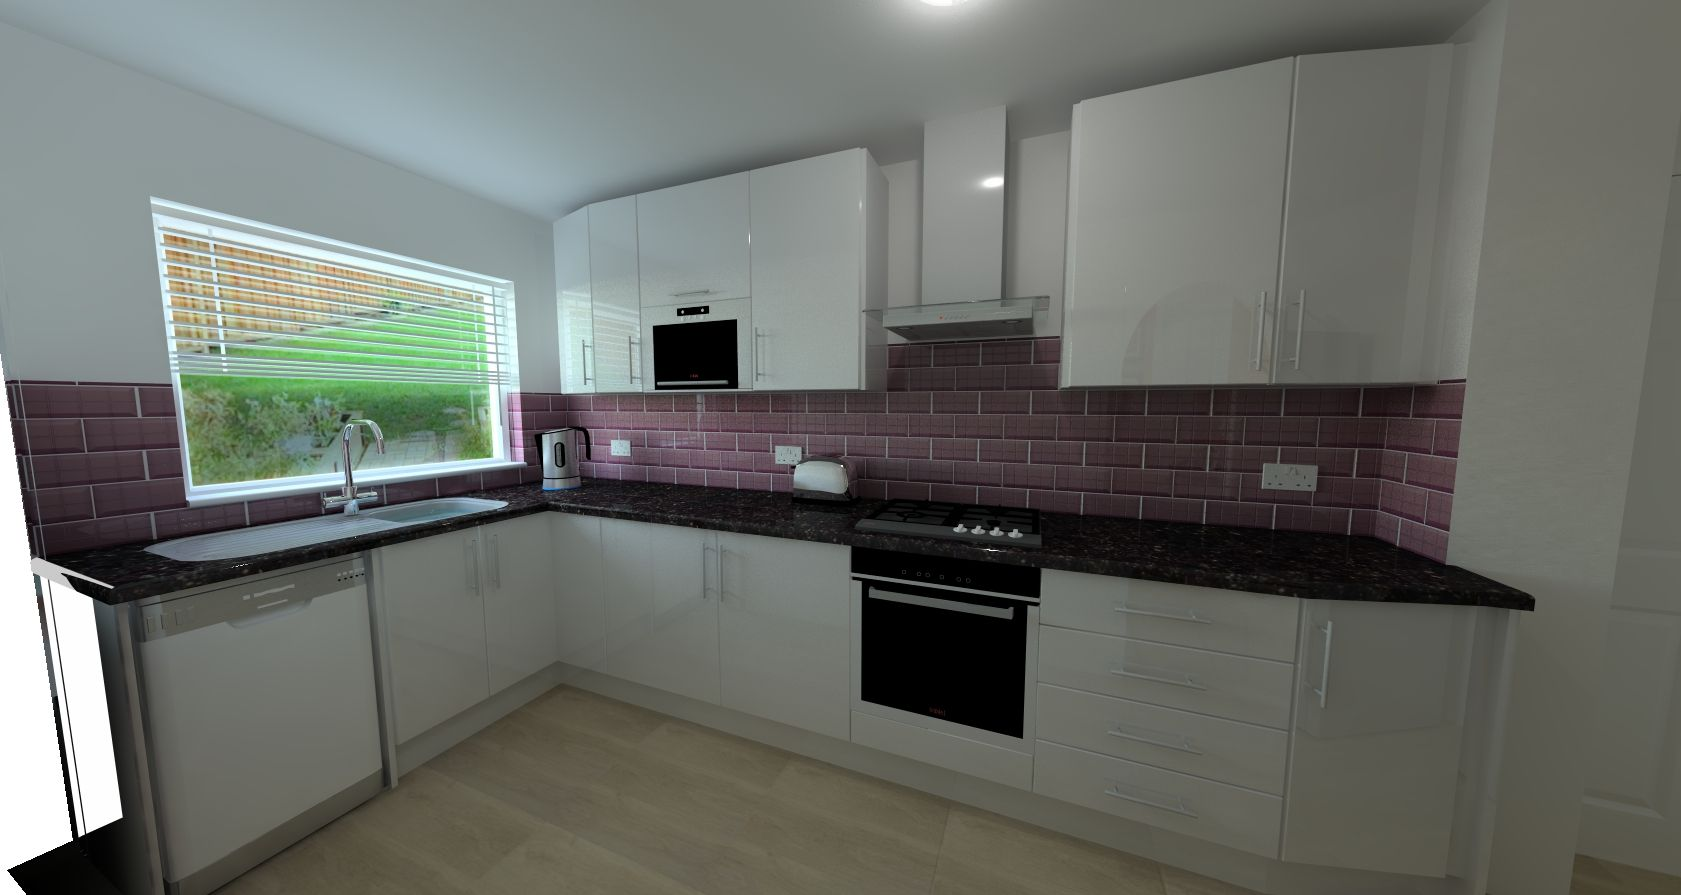 Another Customer Designa High Gloss White Kitchen With Microwave Awesome Kitchen 3D Design Decorating Design